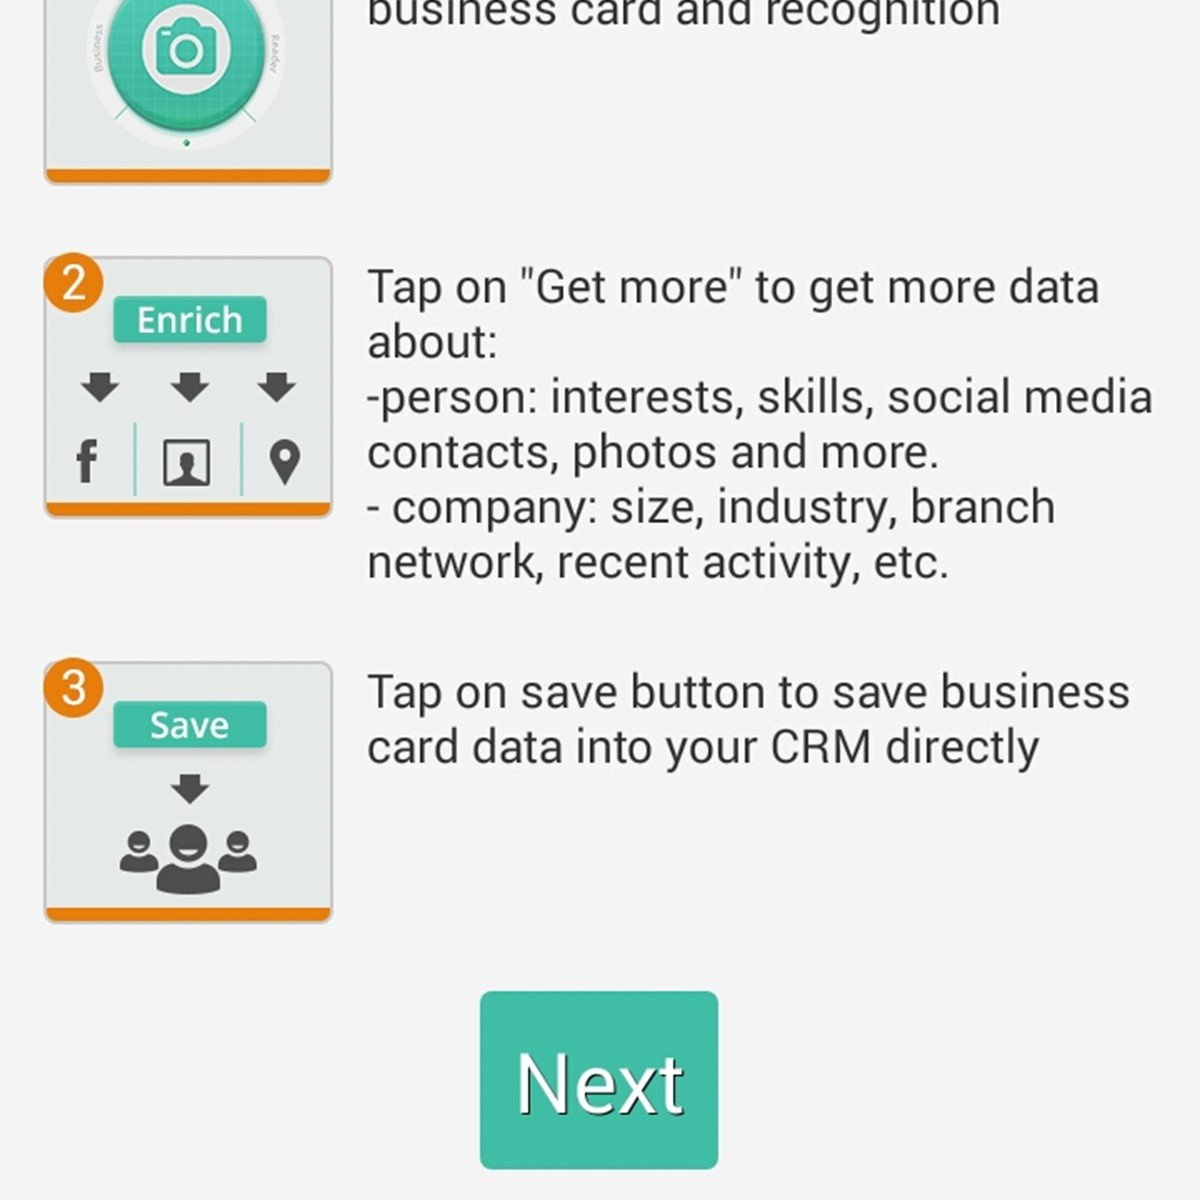 Business Card Recognition Software Authorization Code Images ...